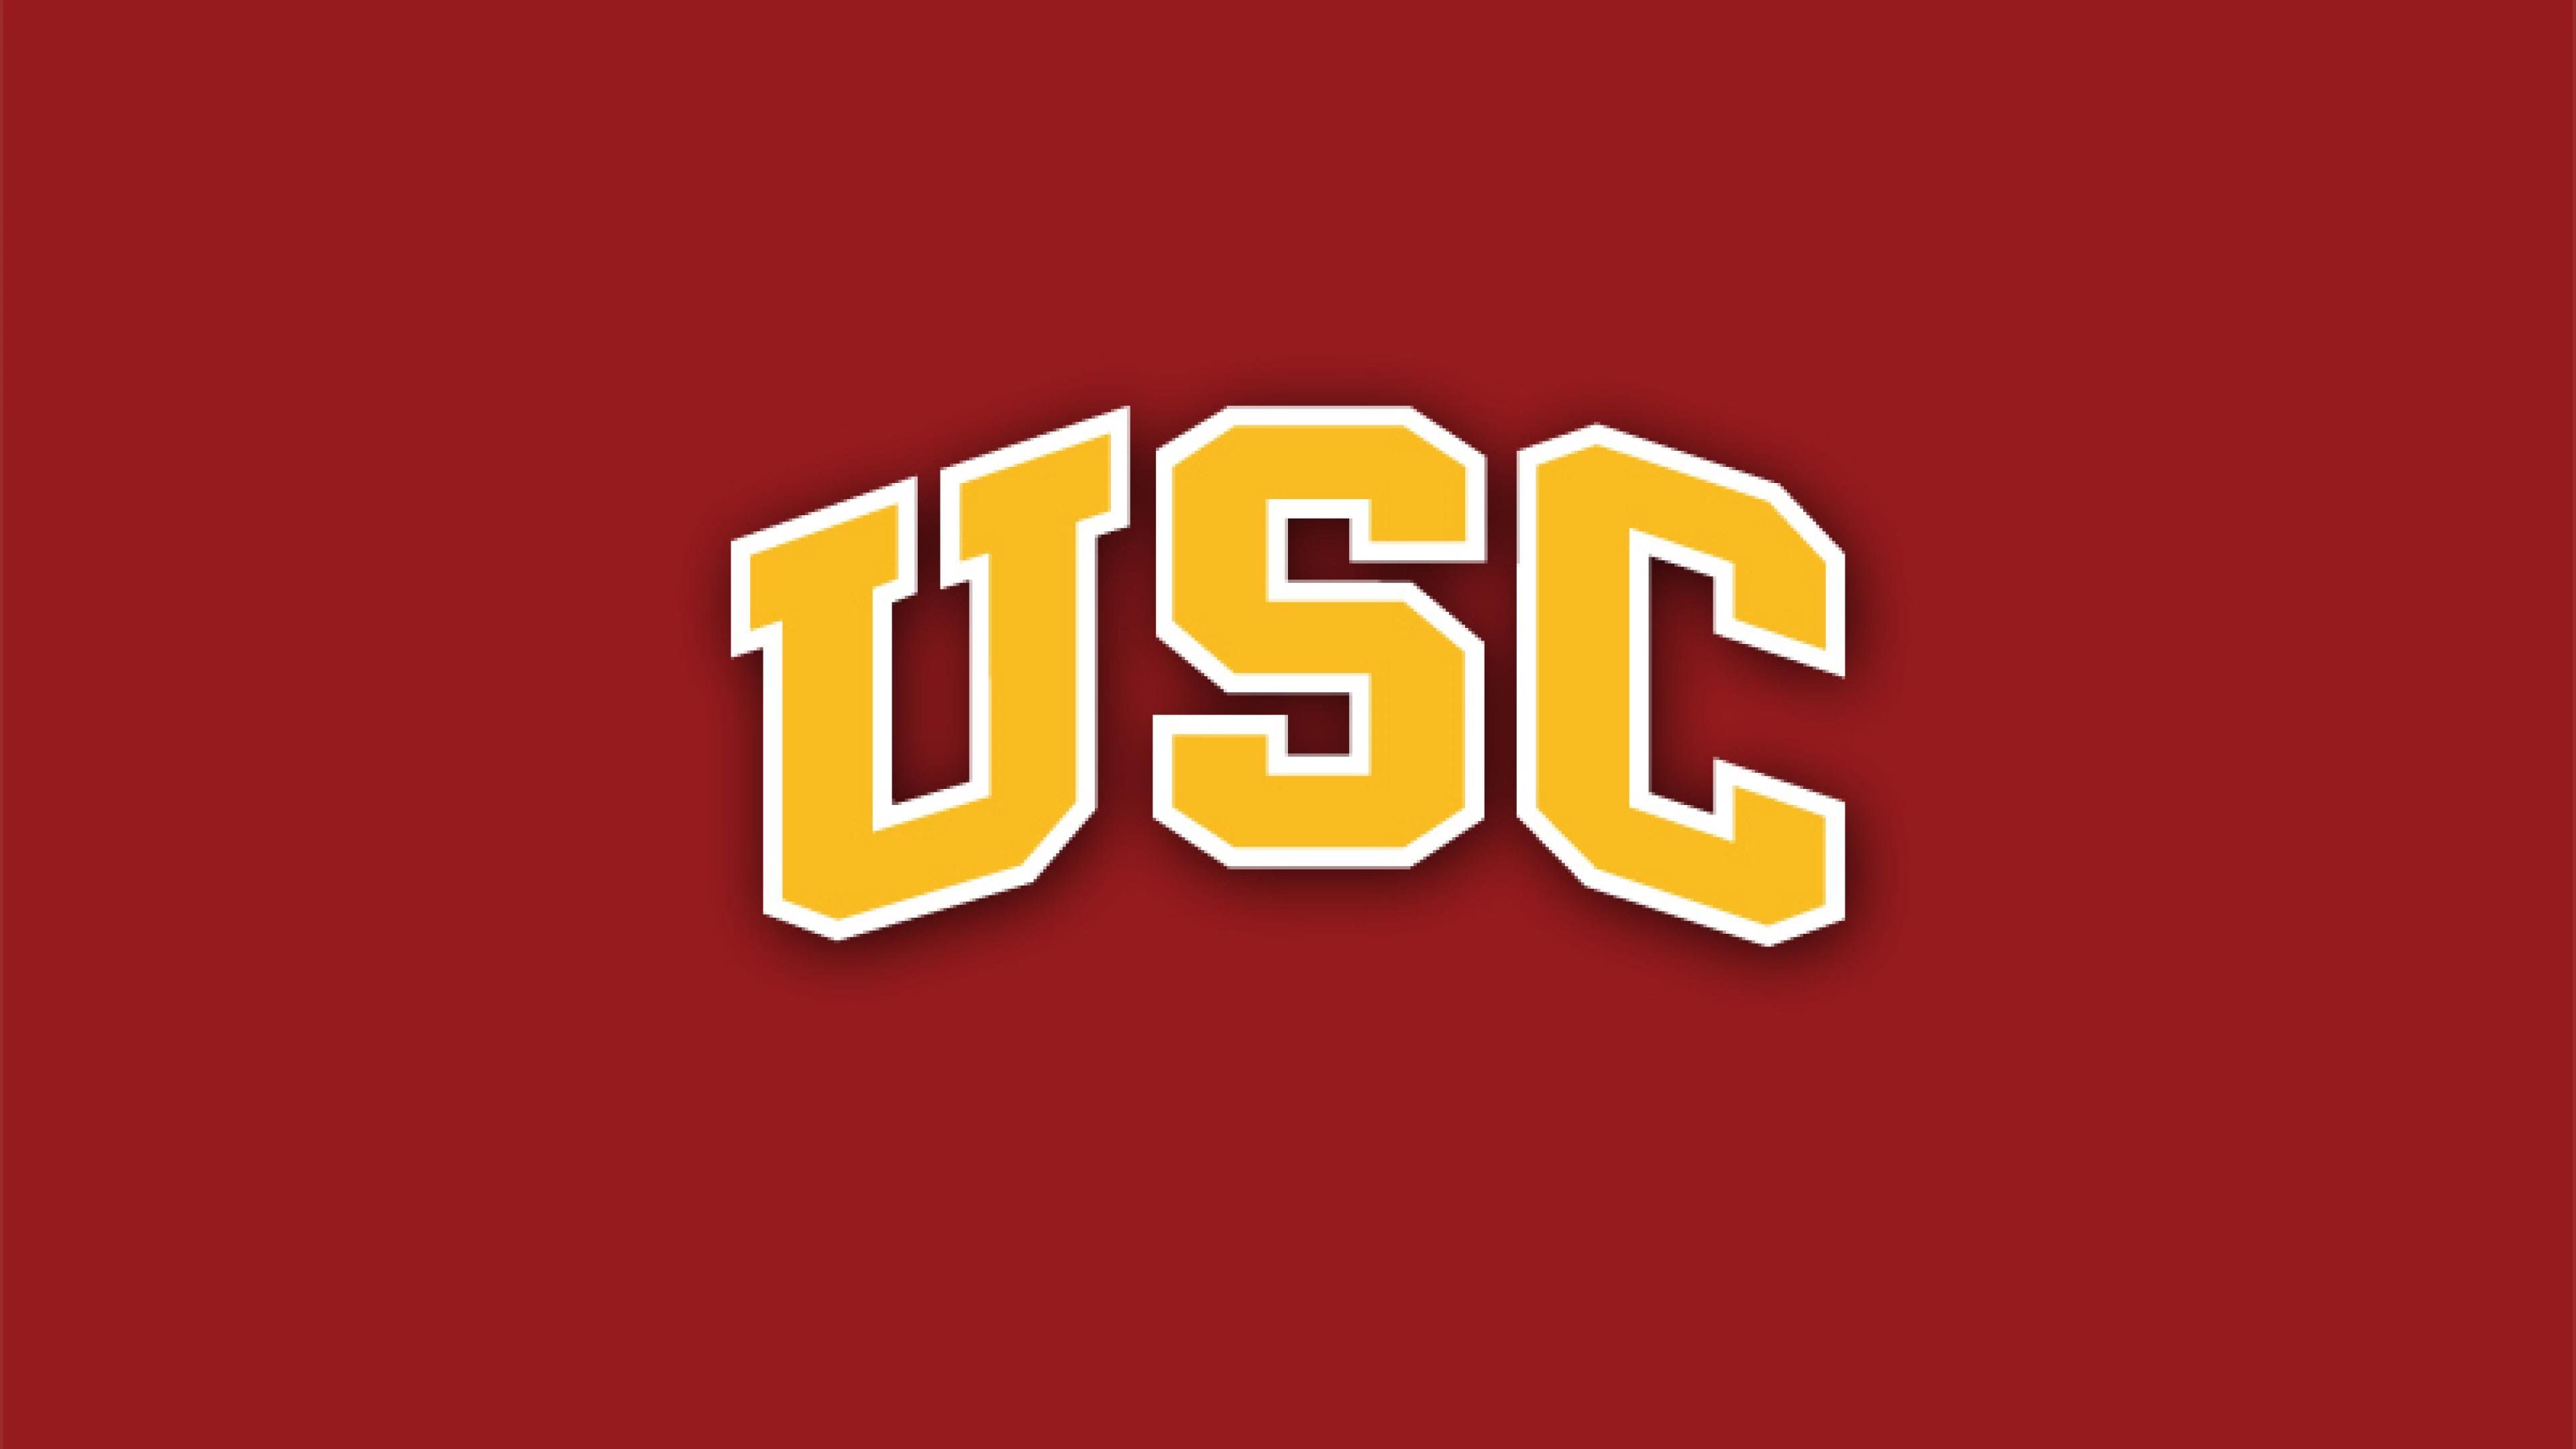 Usc Football Wallpapers HD 3840x2160